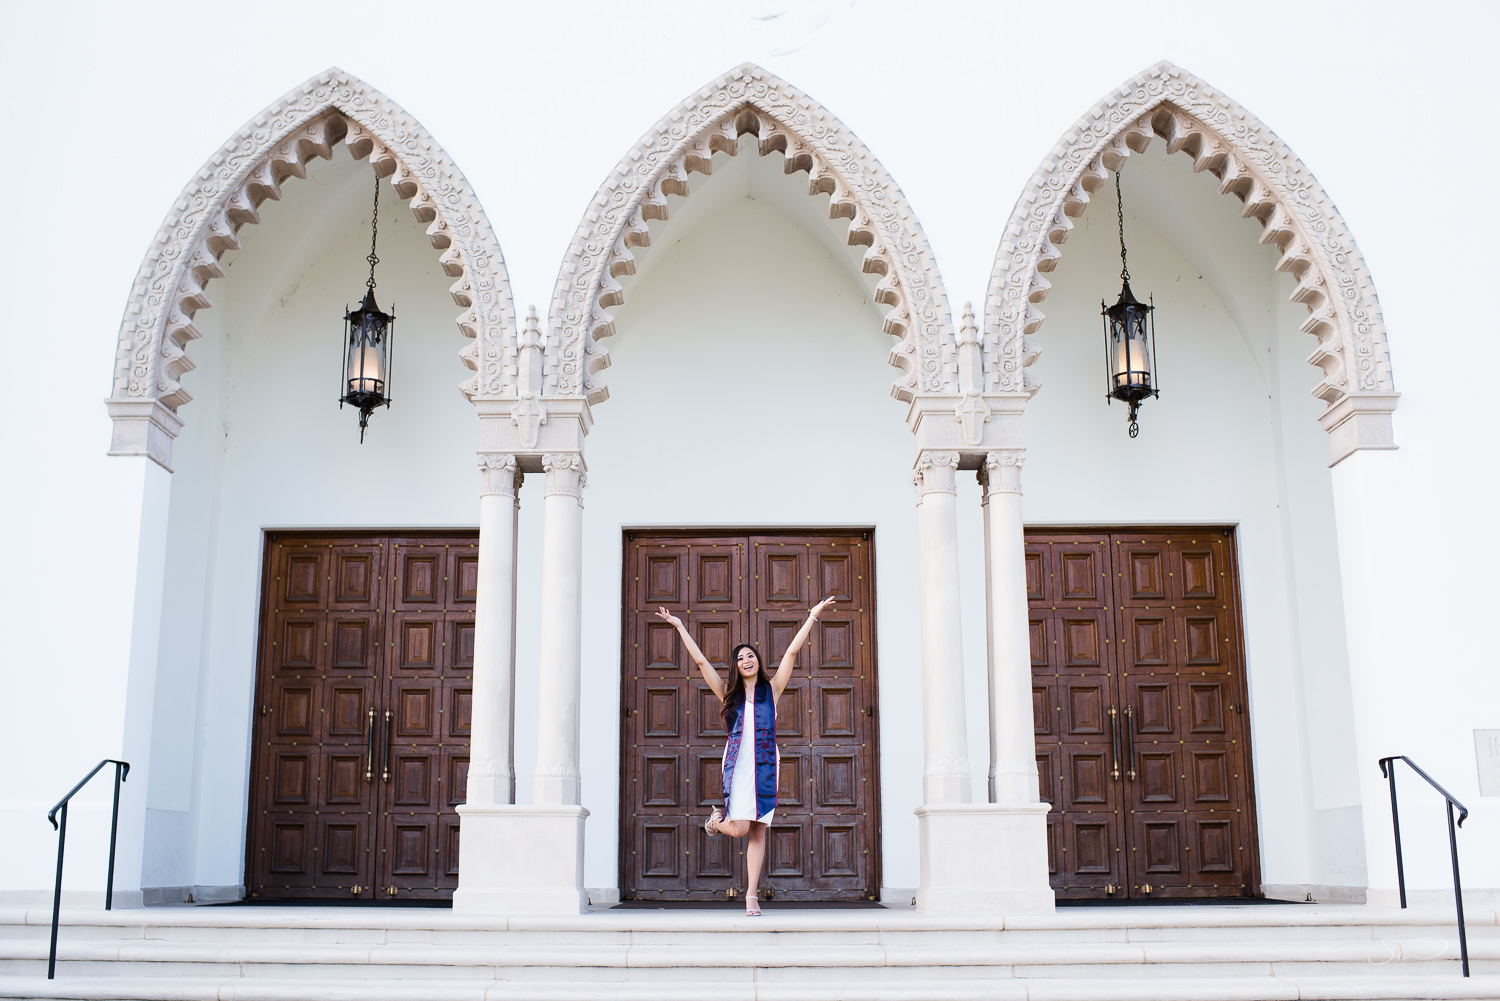 Arches of Sacred Heart Chapel at Loyola Marymount University. LMU. Best graduation portrait photography, Los Angeles.